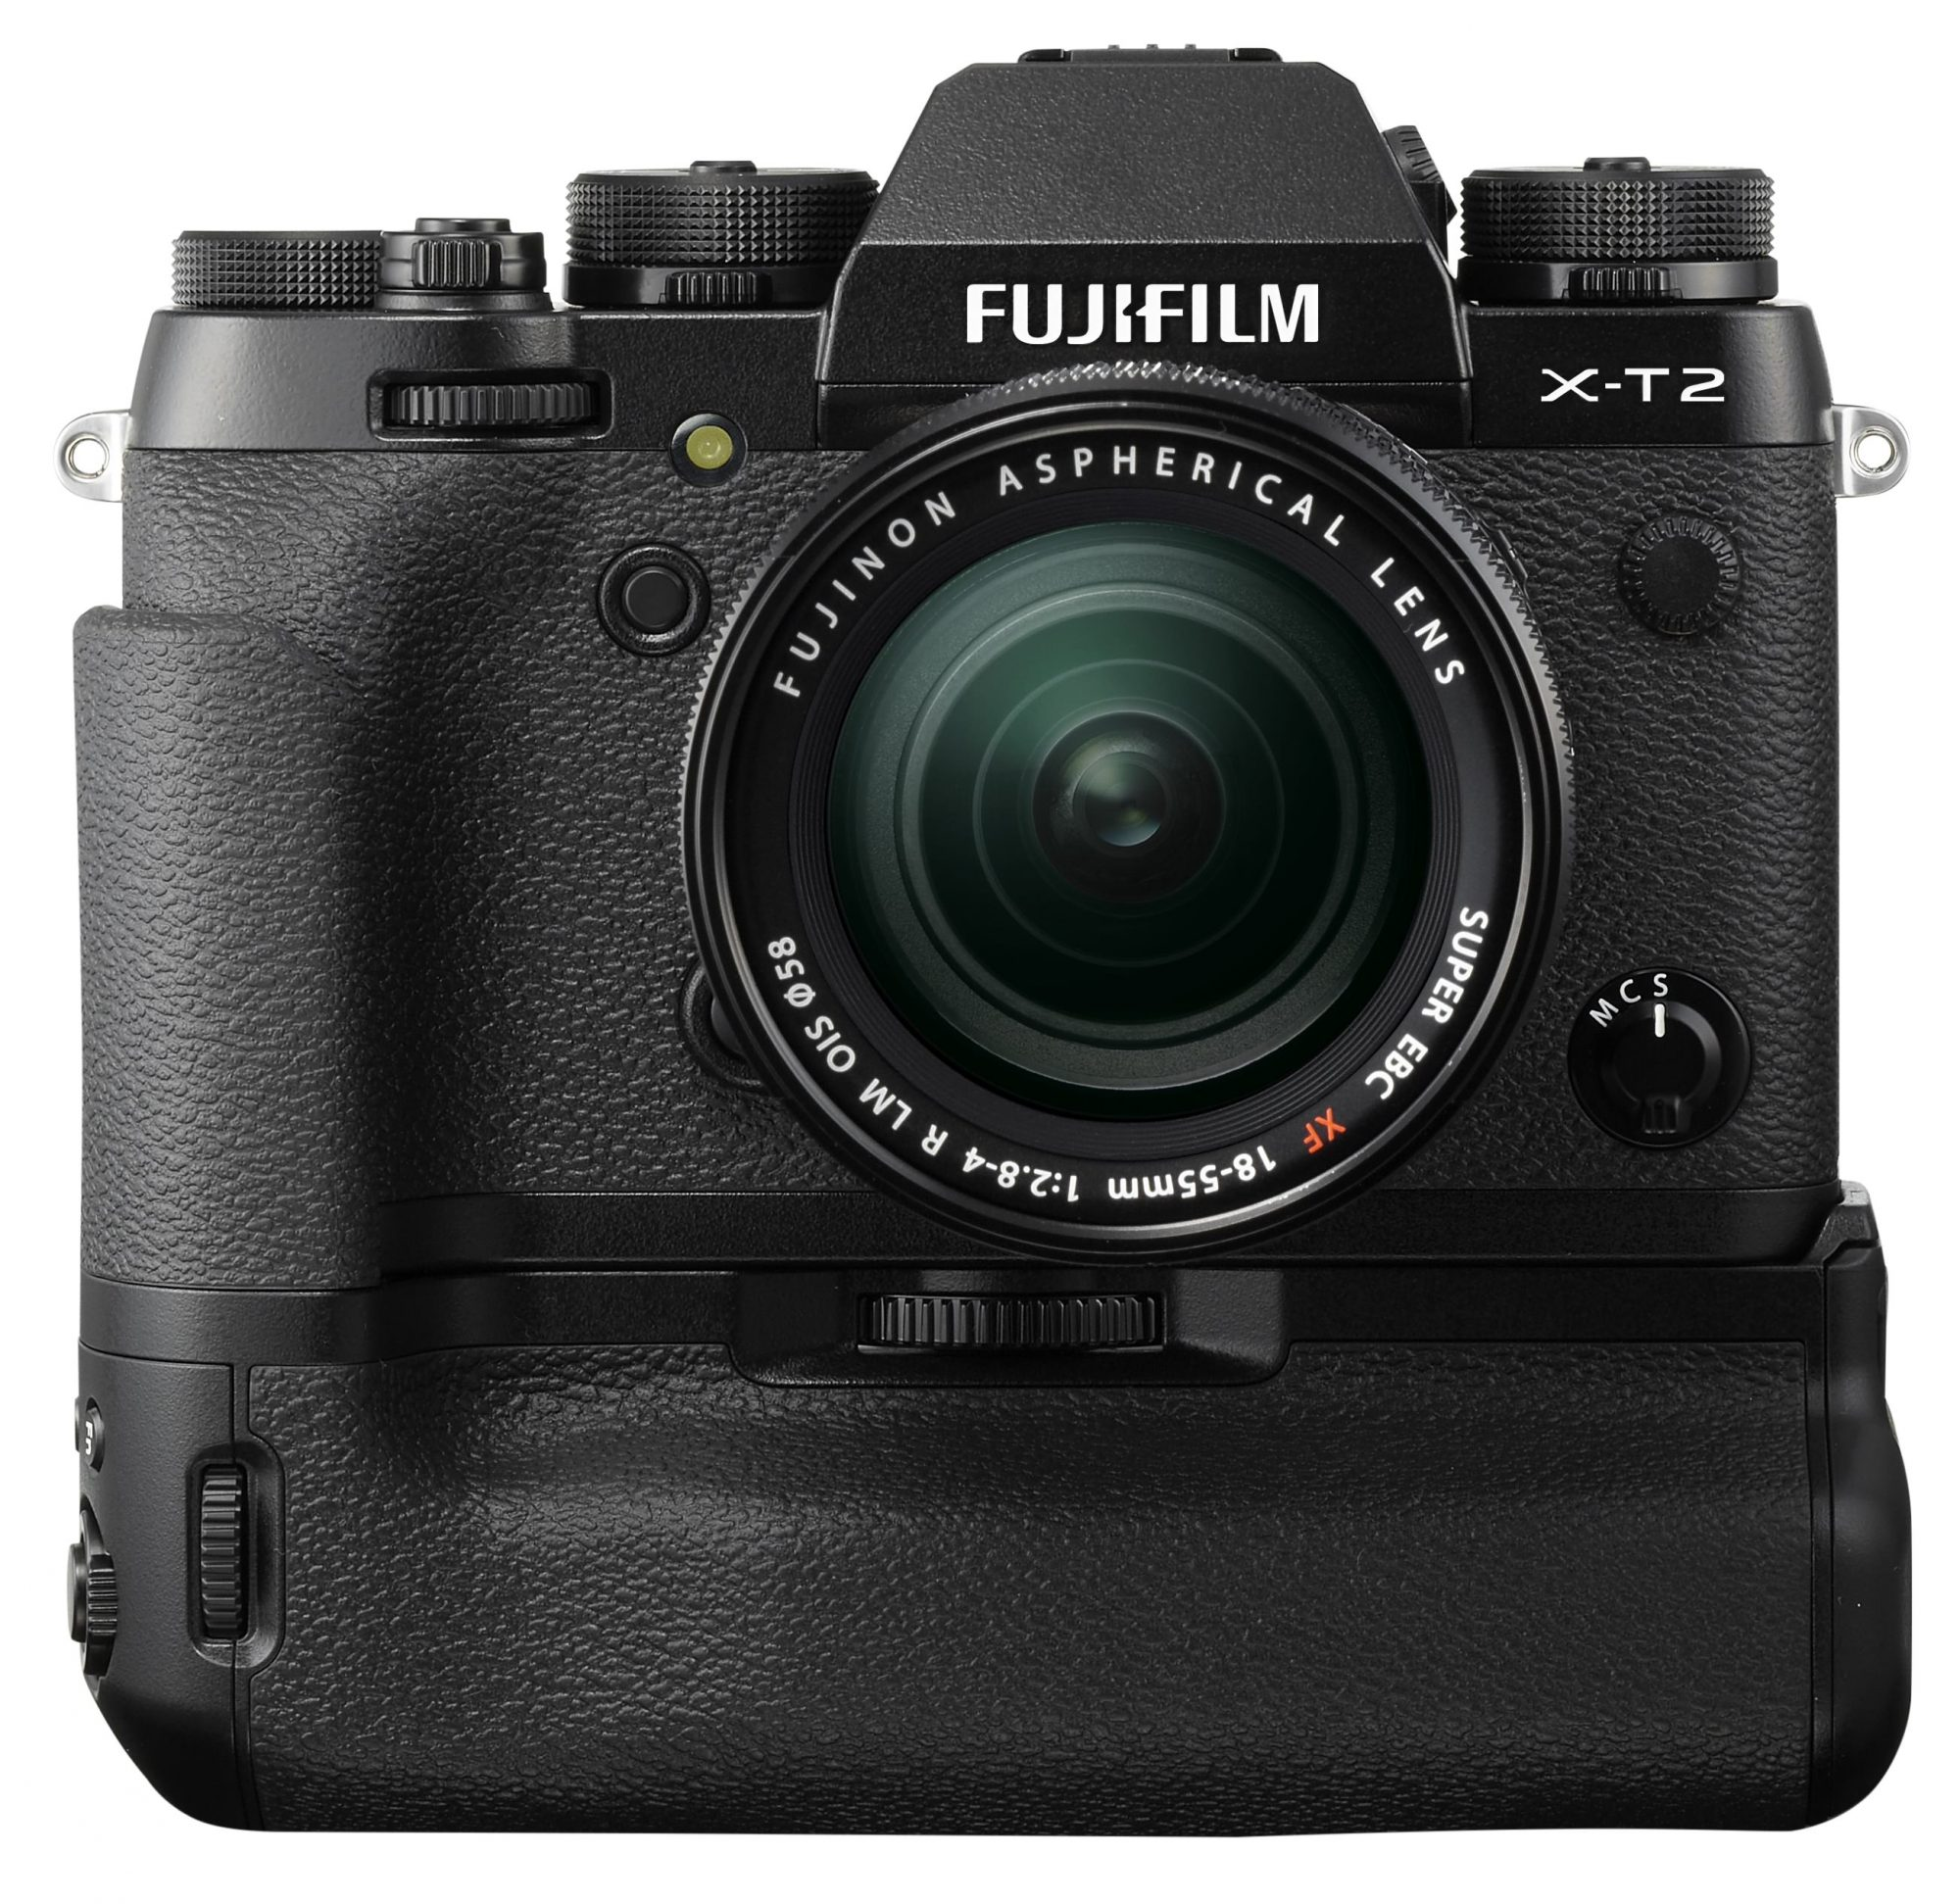 FUJIFILM X-T2 with booster